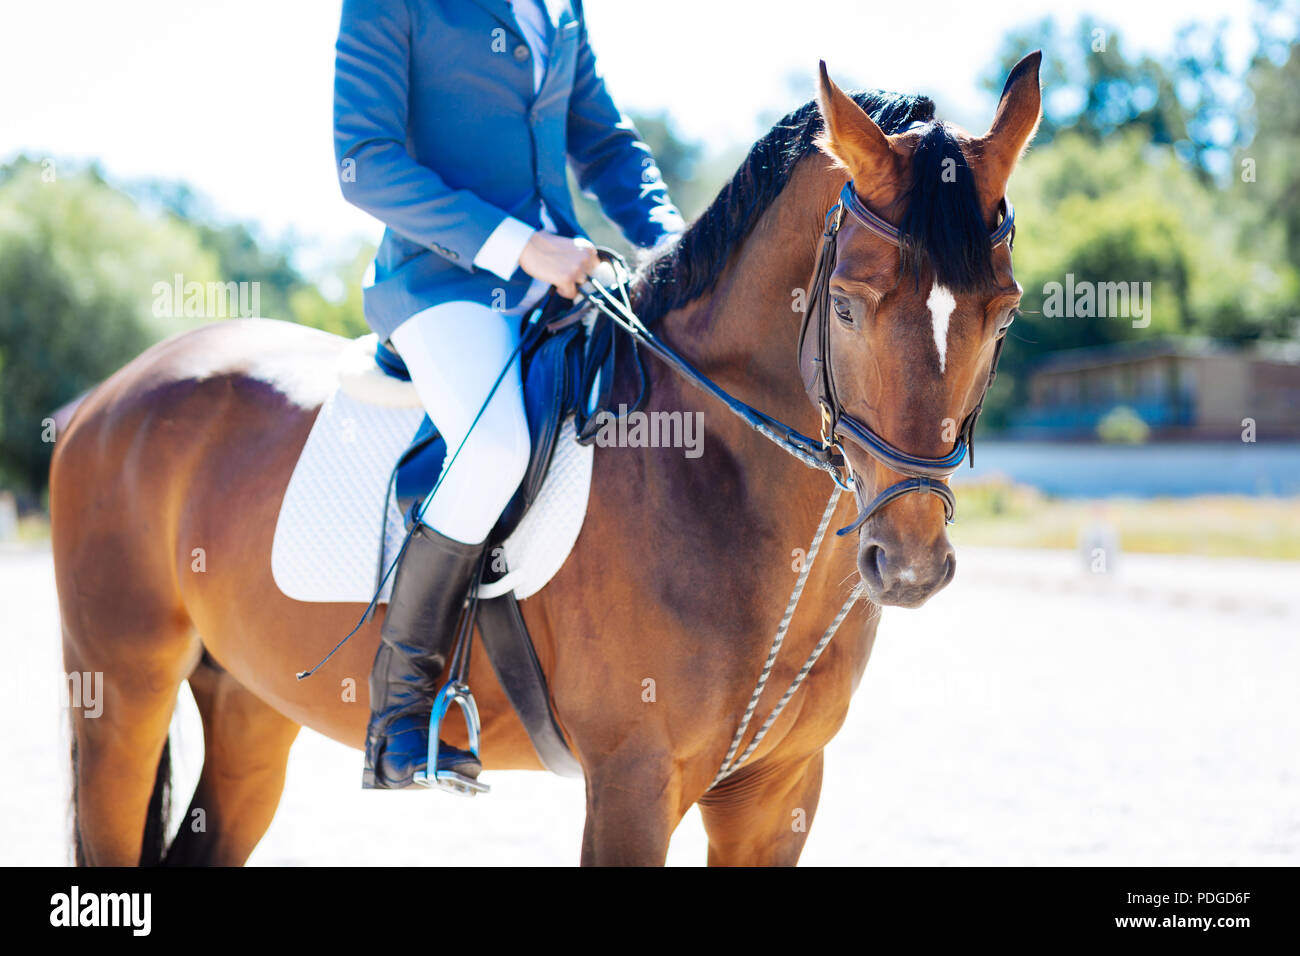 Man enjoying horse riding doing it on nice warm summer day - Stock Image